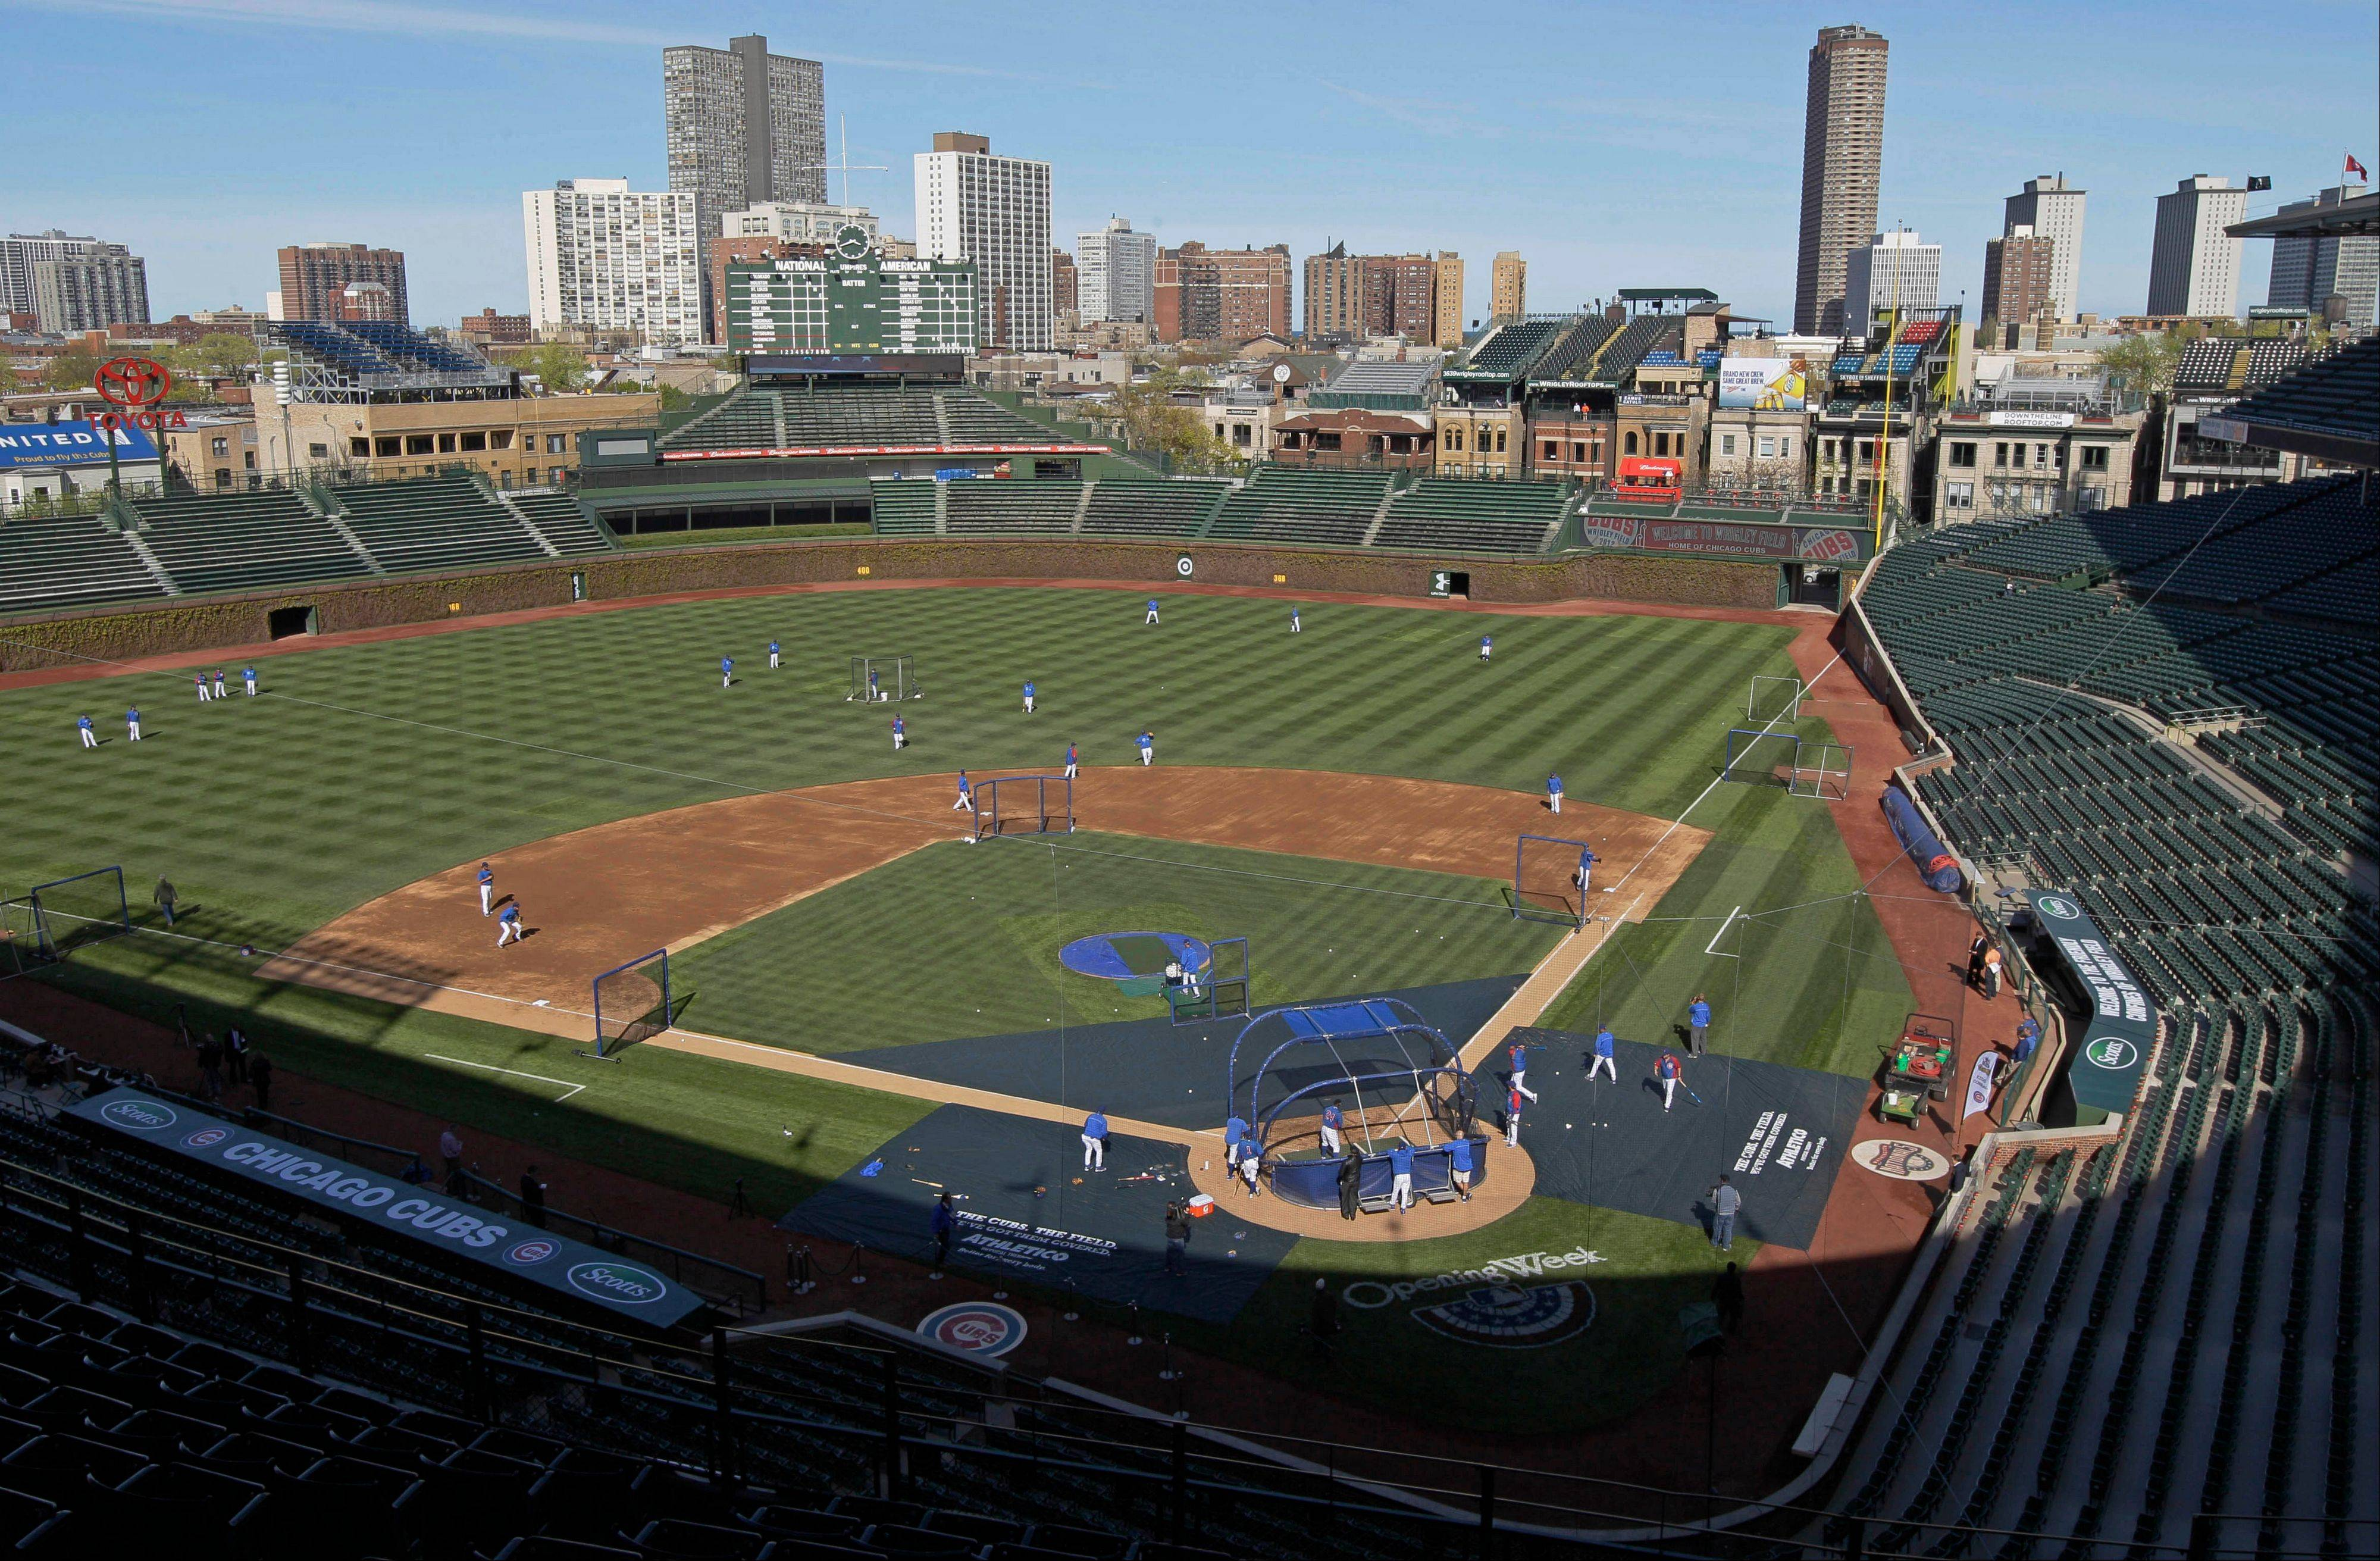 Baseball returns to Wrigley Field on Monday for the Cubs' home opener.